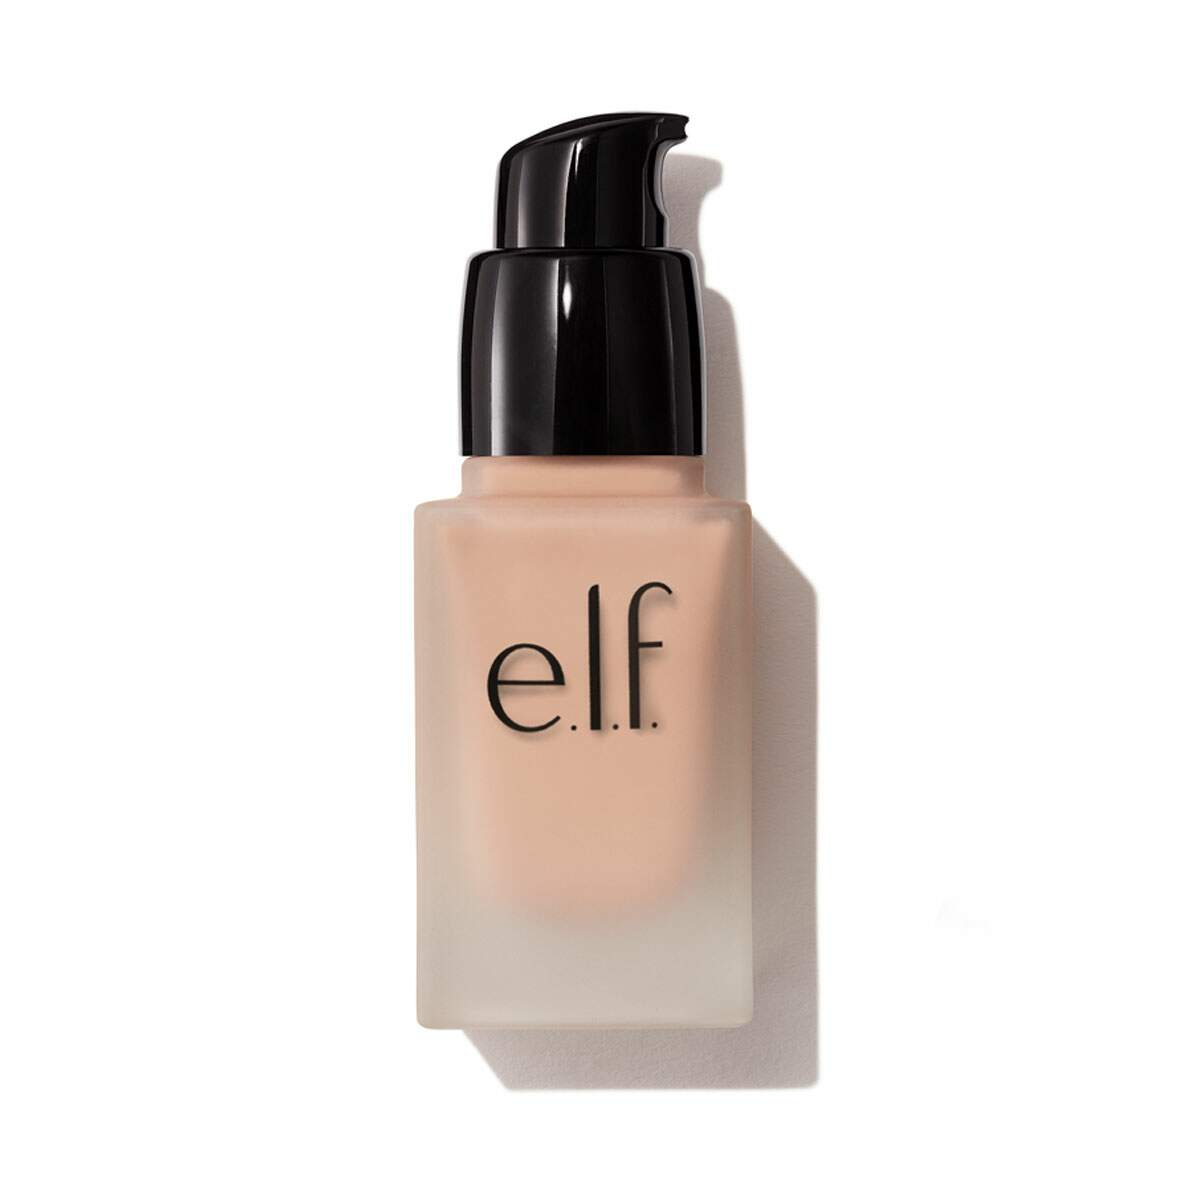 Base Flawless Finish SPF 15 Oil Free ELF